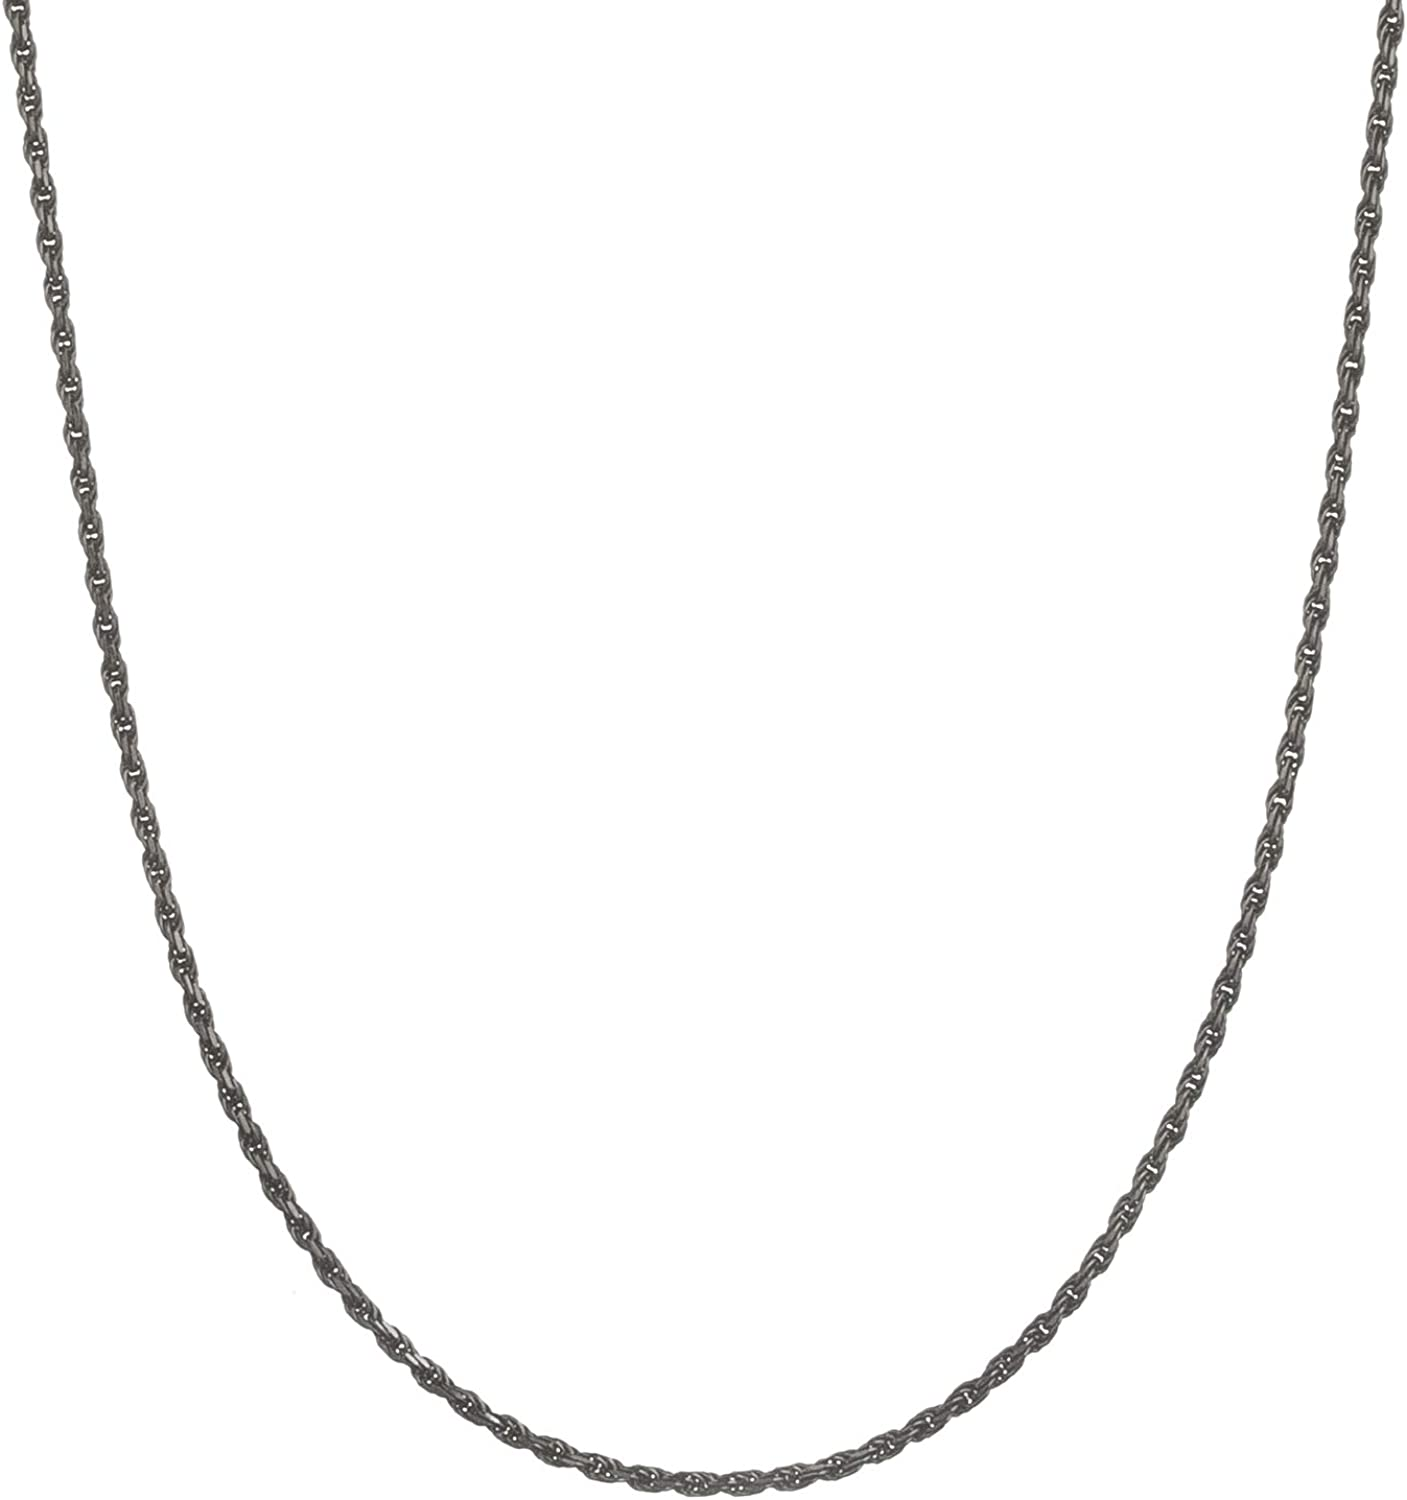 925 Sterling Silver Trace Cable 1.5mm Diamond Cut Chain Necklace 14 16 18 20 22 24 26 28 30 inches